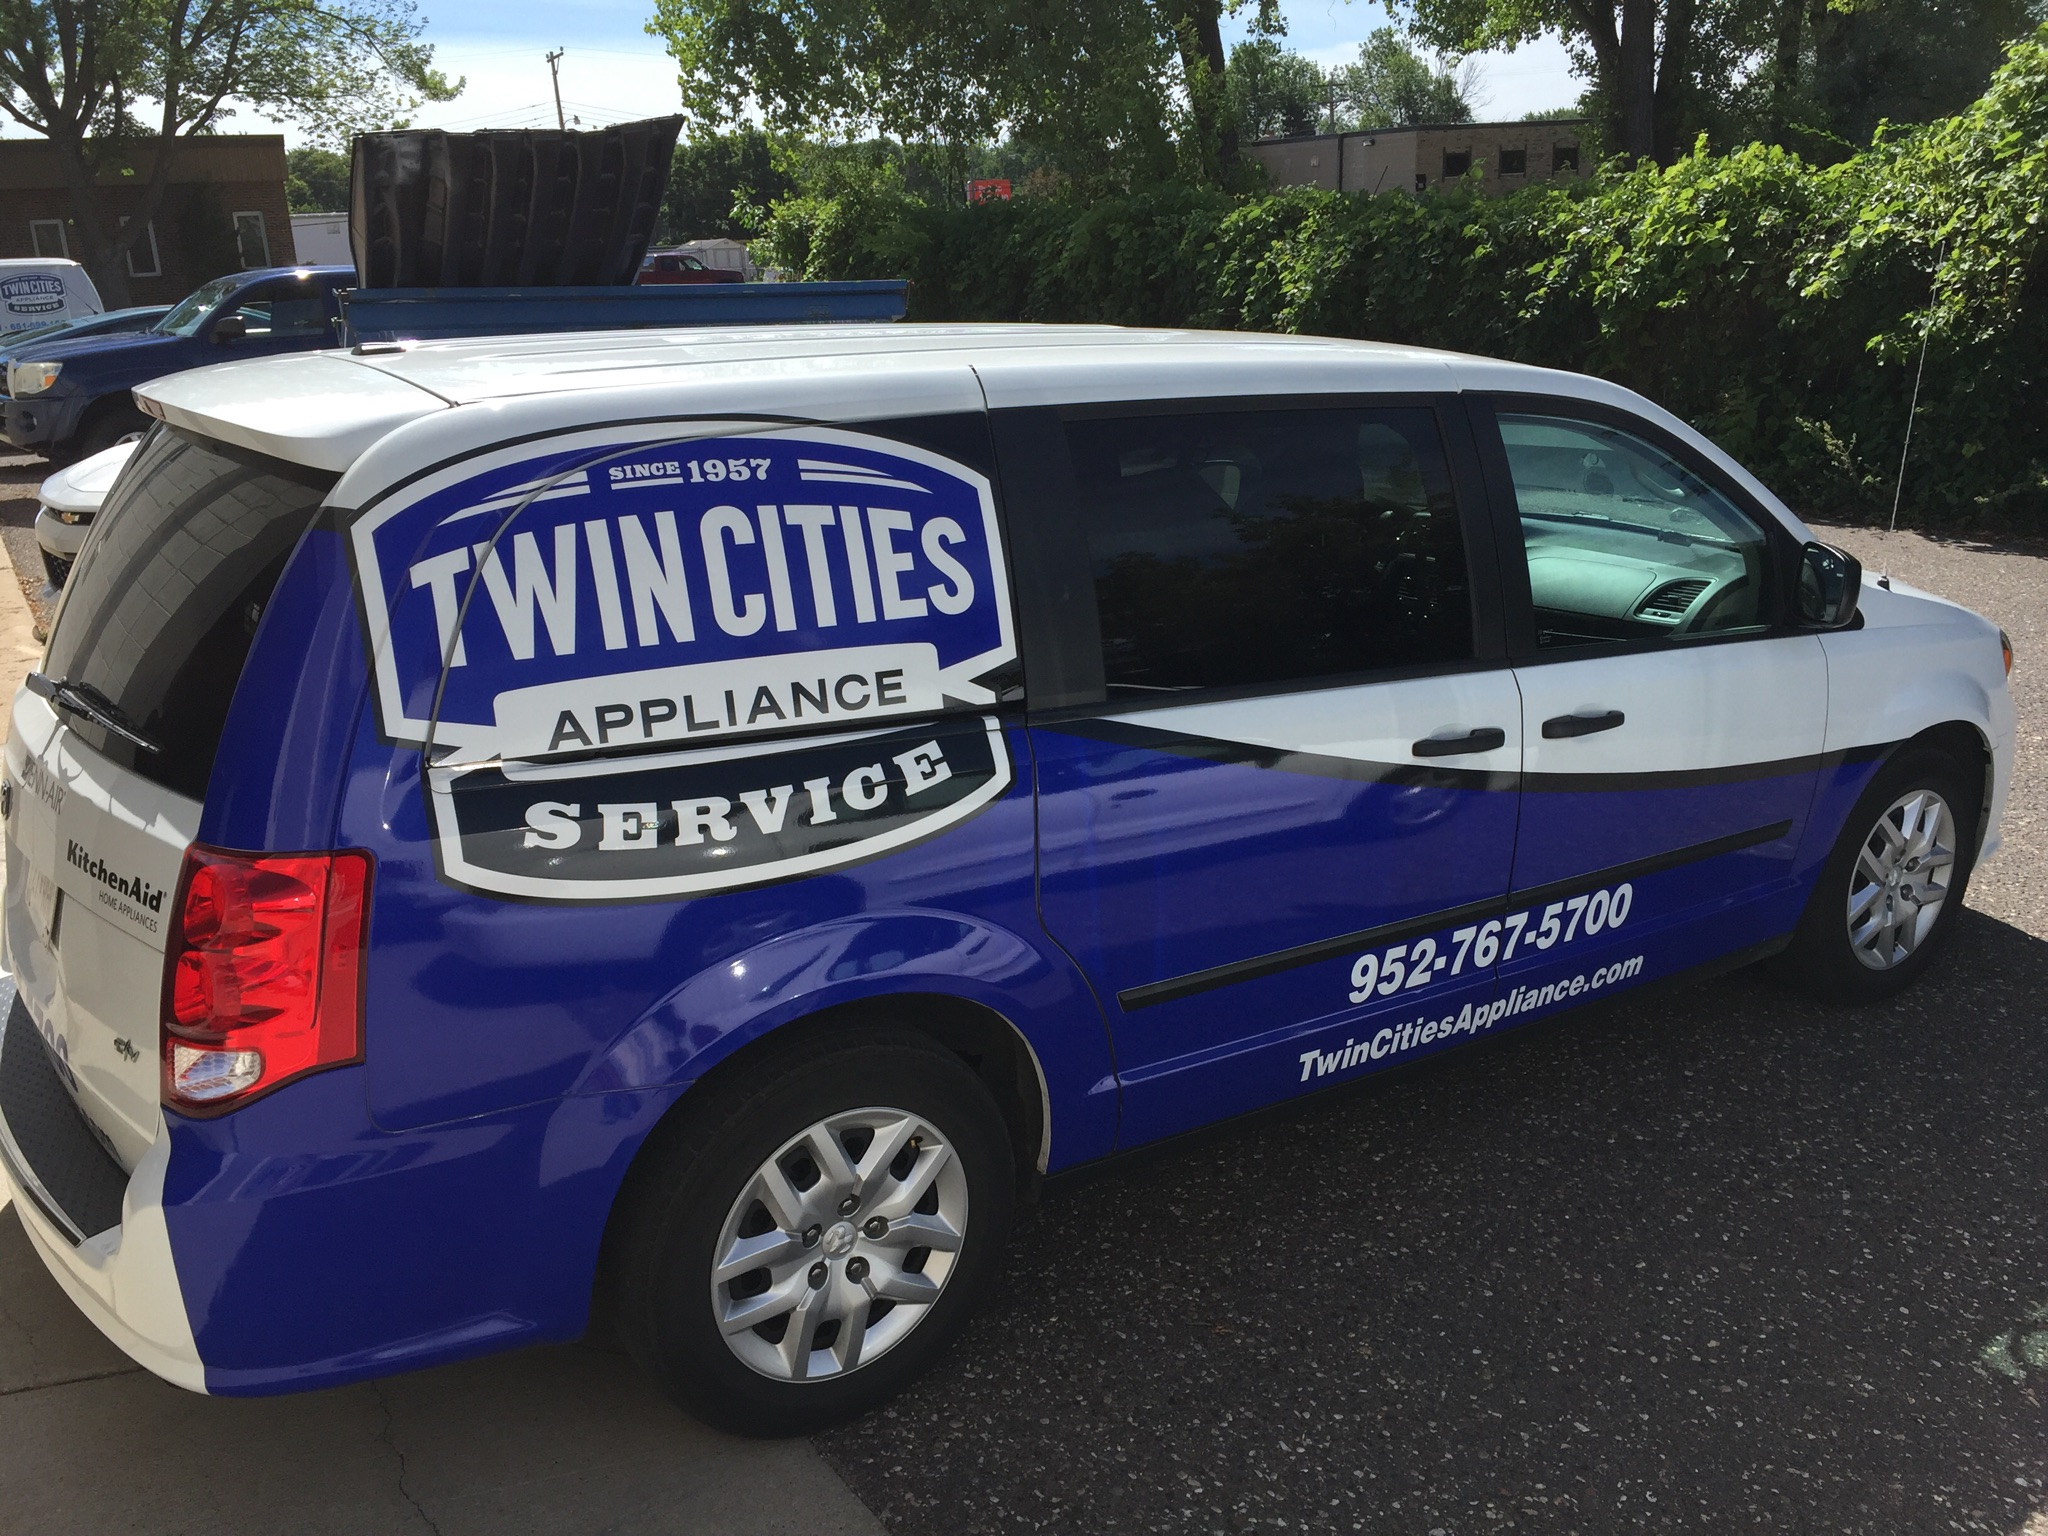 Minneapolis Appliance Repair | Twin Cities Appliance Service on